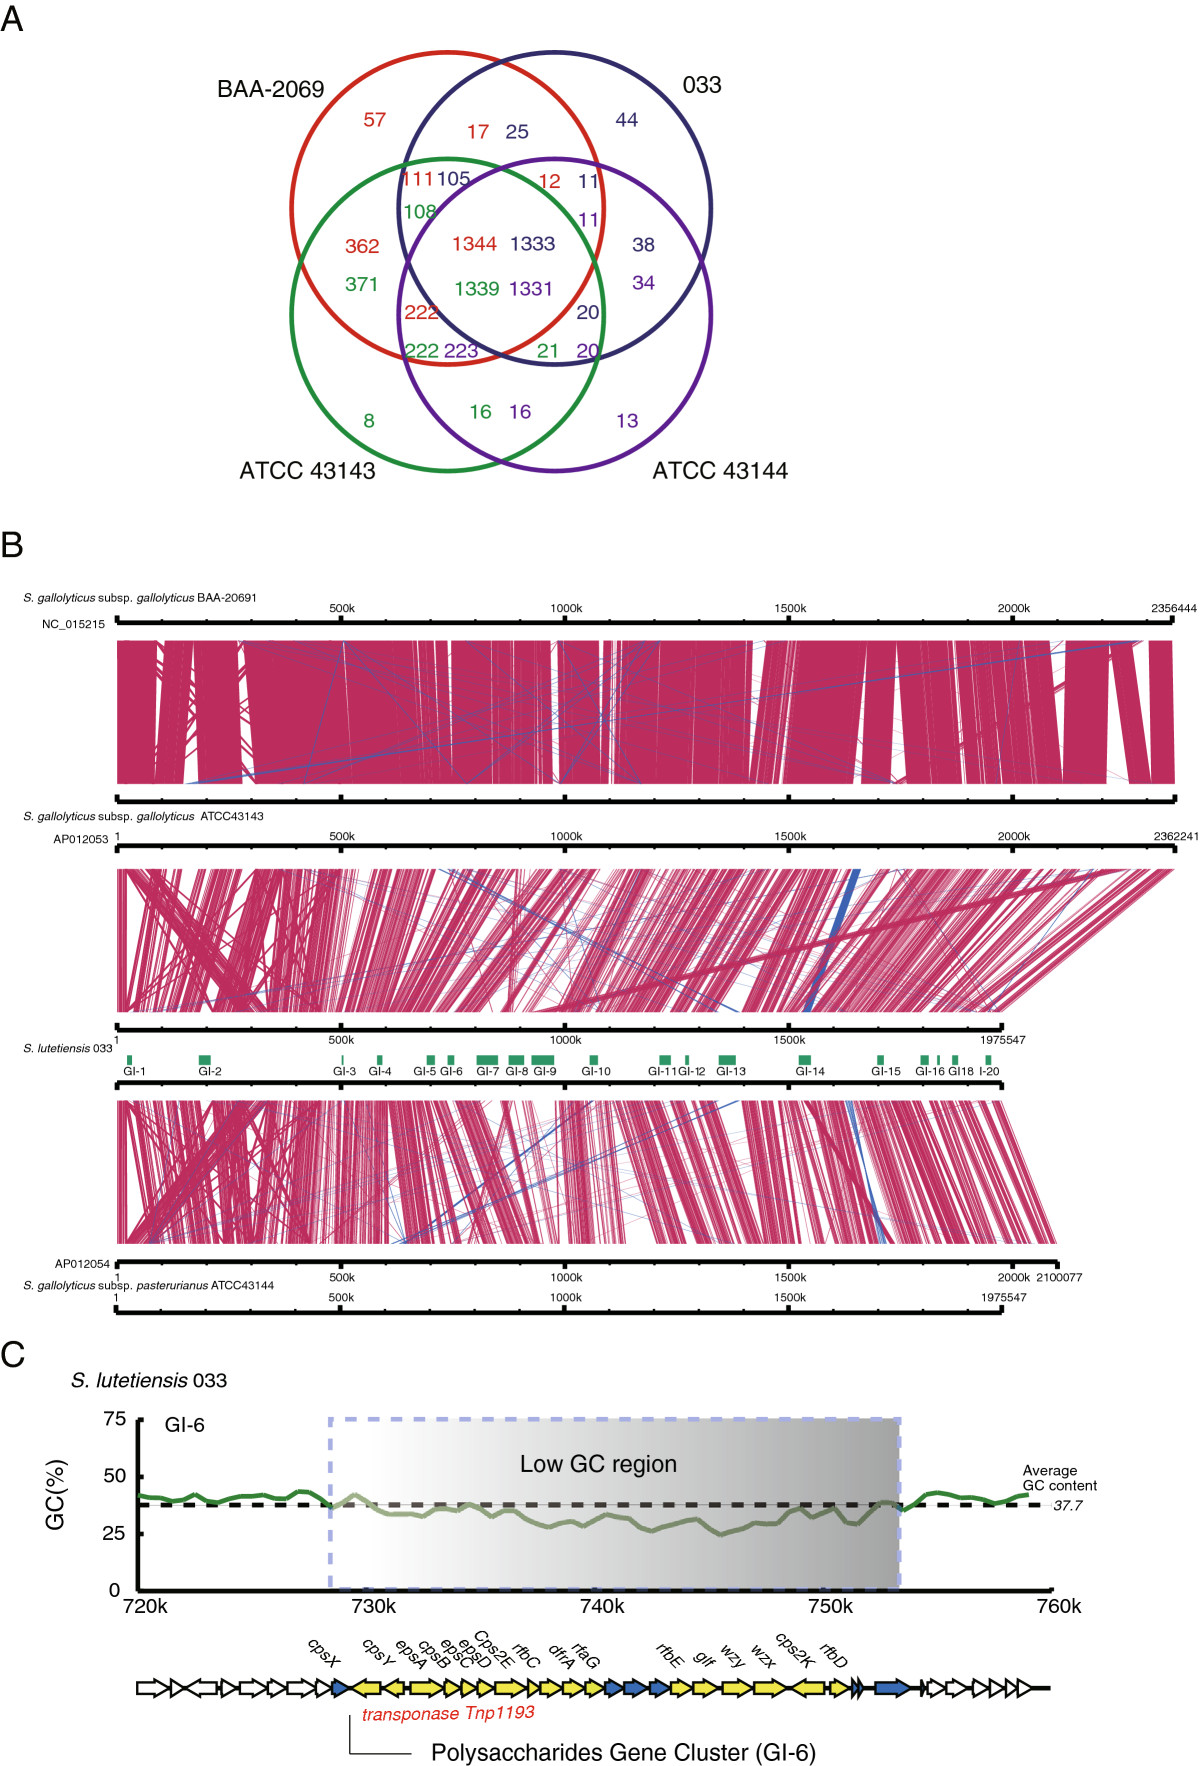 https://static-content.springer.com/image/art%3A10.1186%2F1471-2180-13-141/MediaObjects/12866_2012_Article_2031_Fig5_HTML.jpg